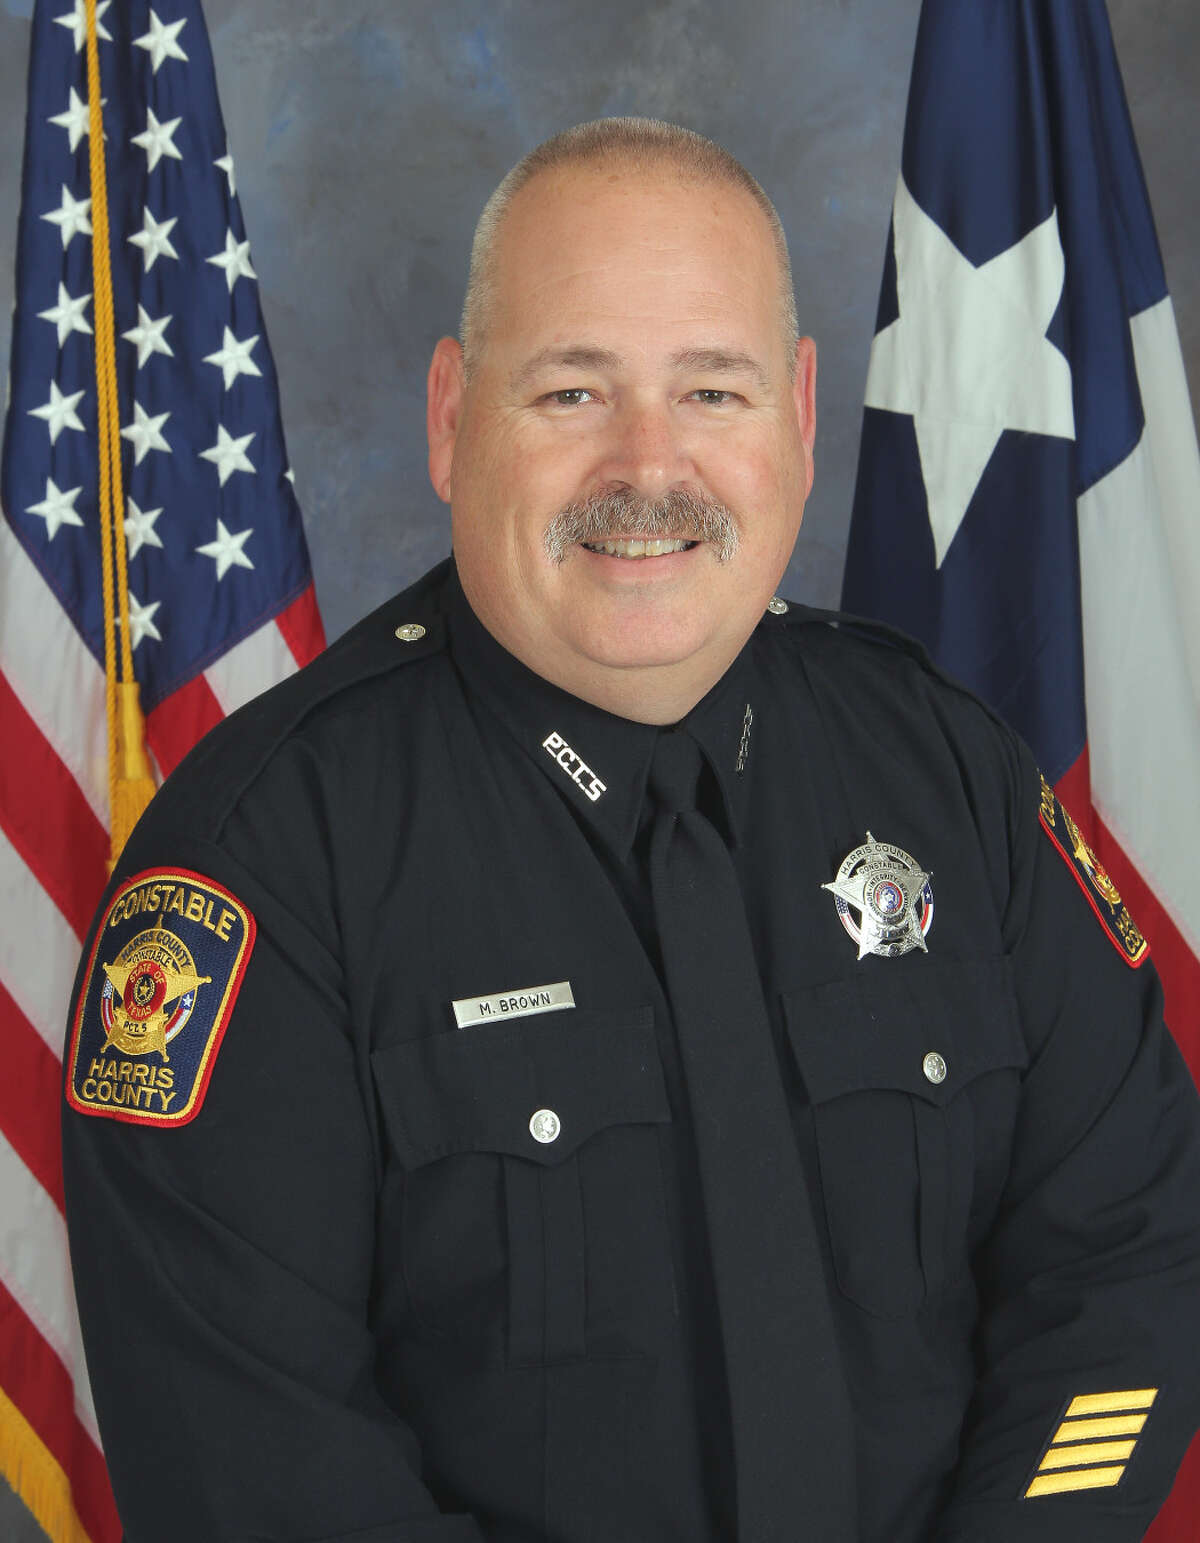 Deputy Mark Brown, 53, died on July 25, 2020, after battling COVID-19 for about a month.